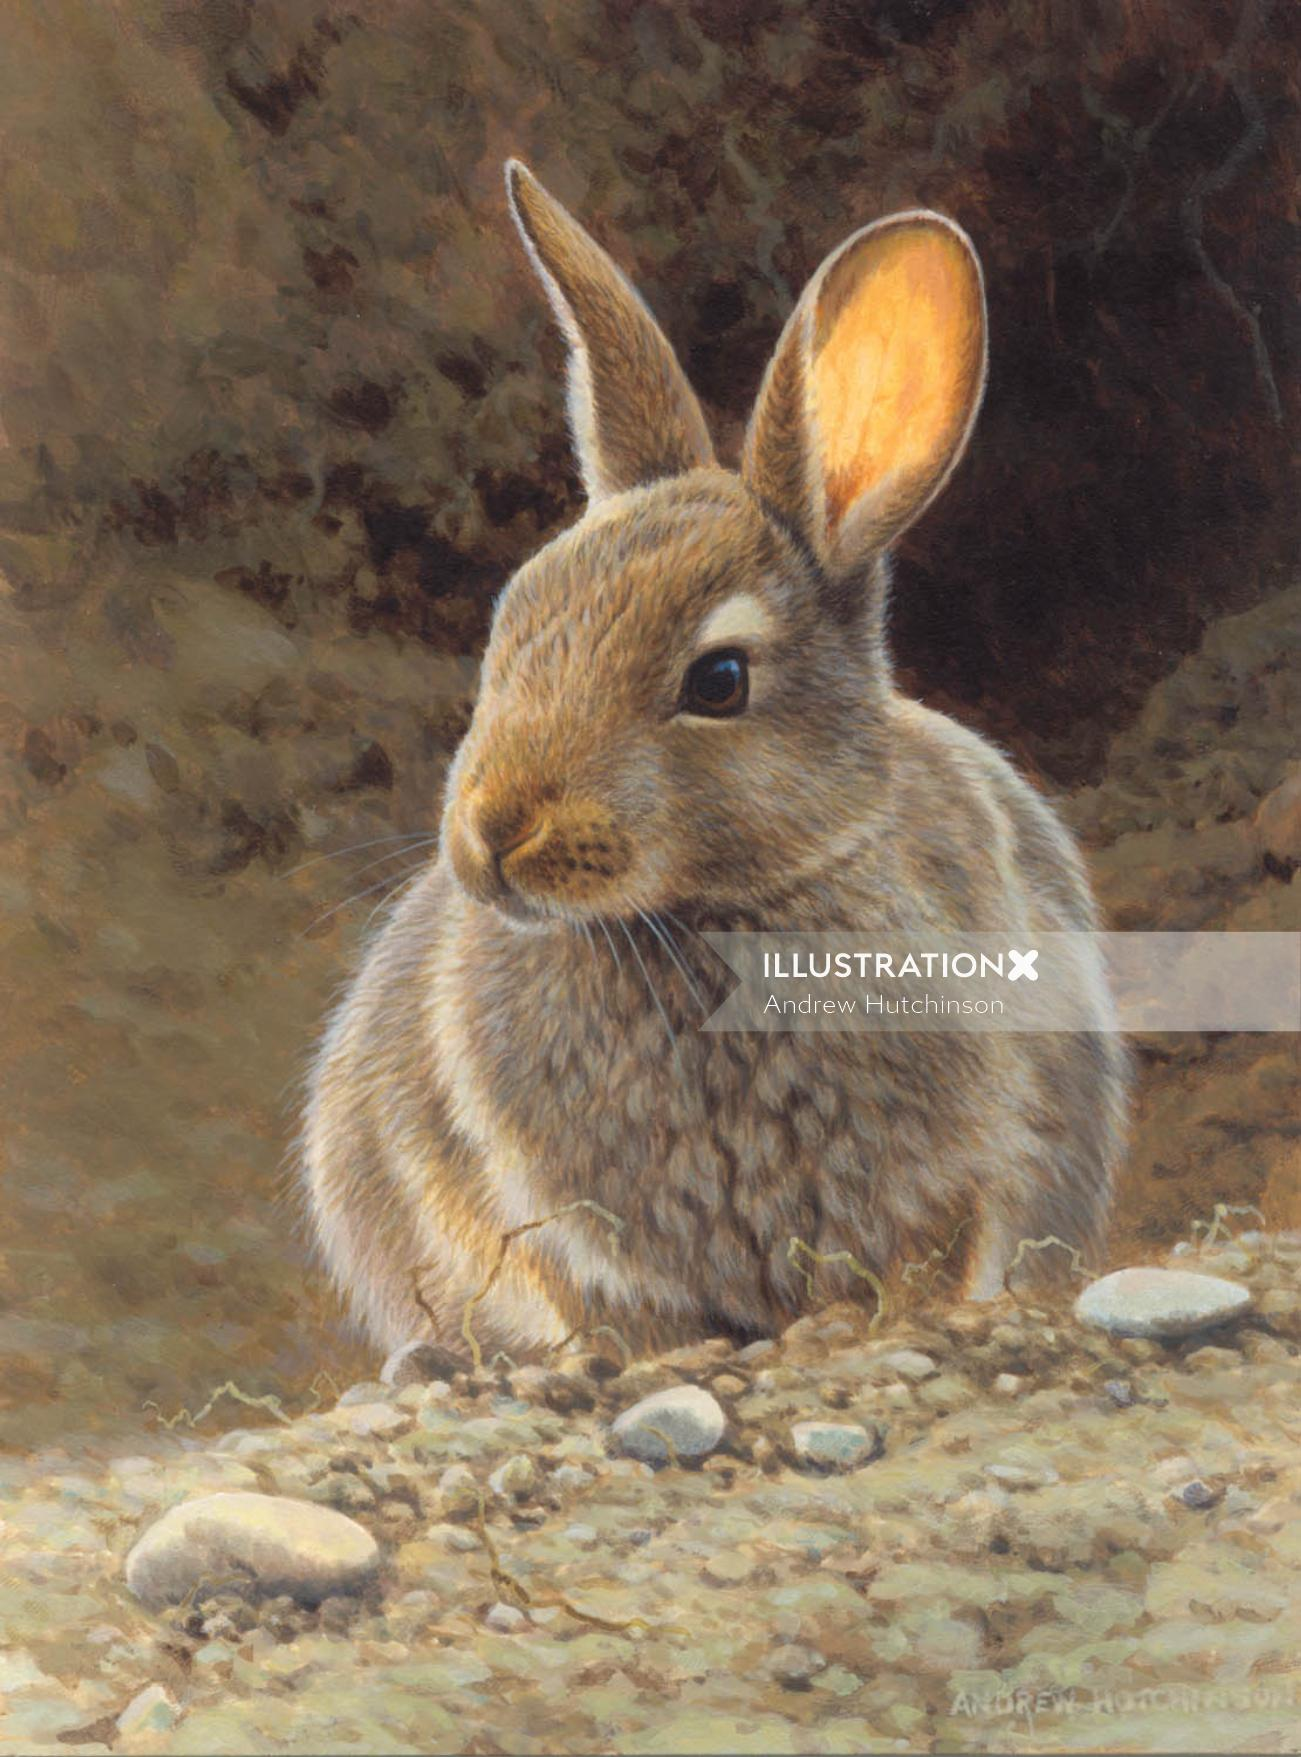 Rabbit Illustration, Wildlife Images © Andrew Hutchinson